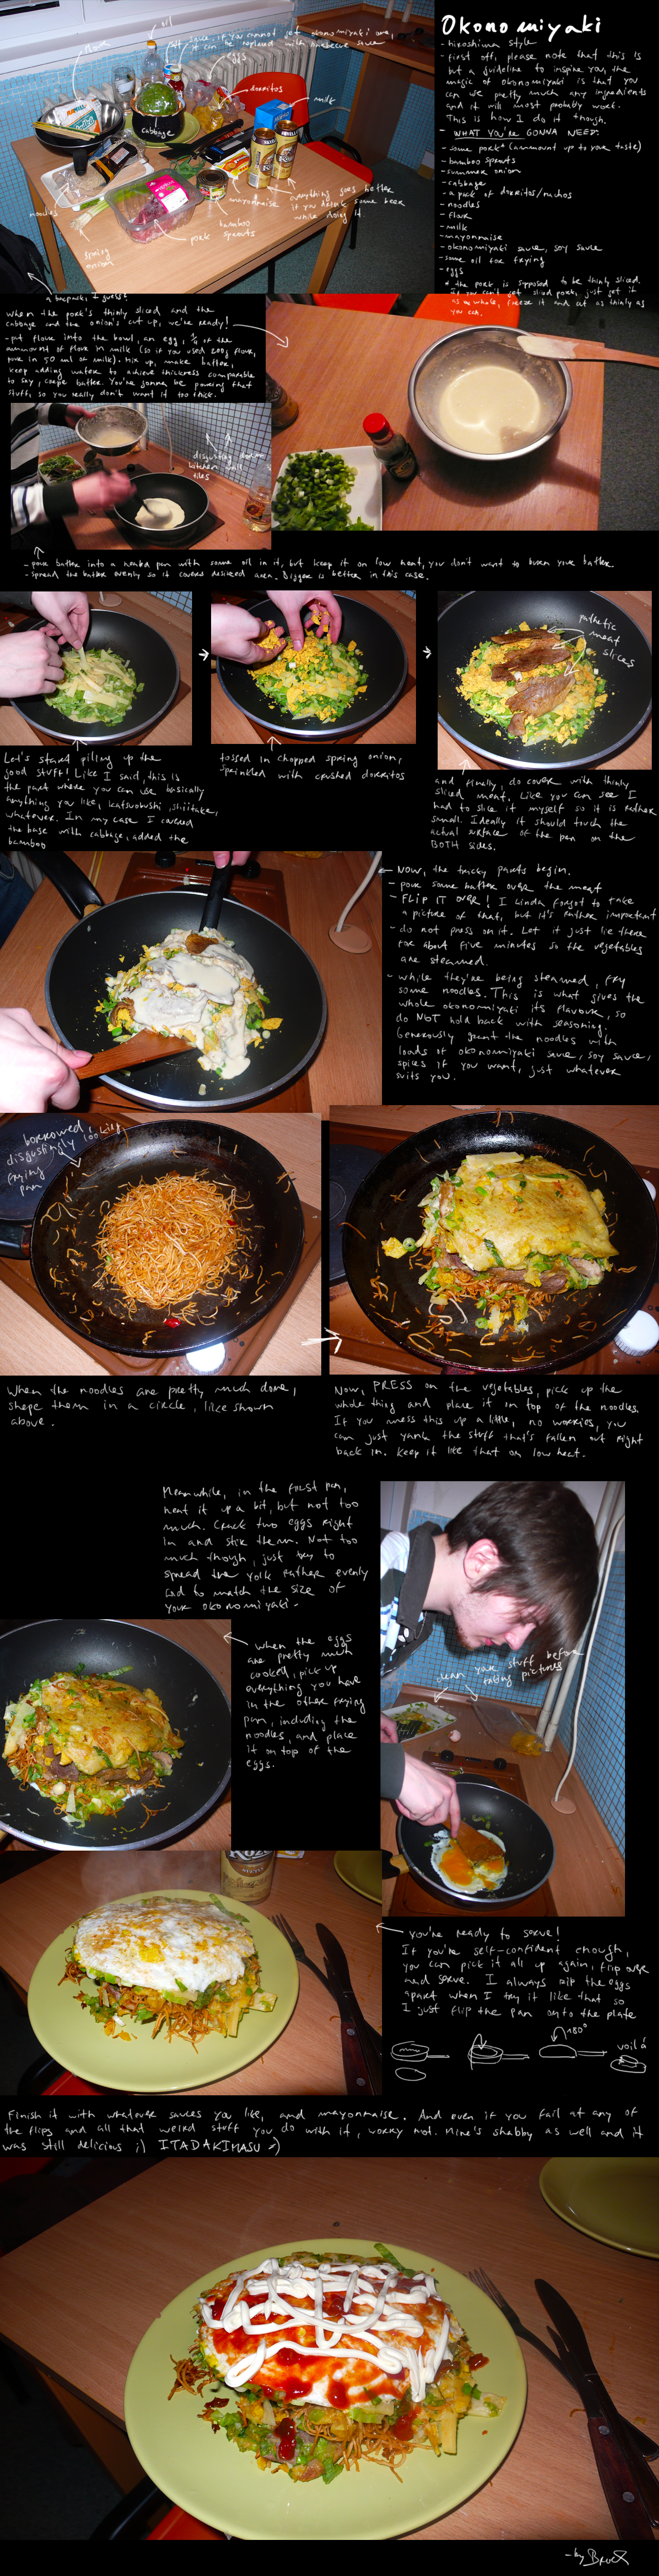 How to make okonomiyaki by BrocX